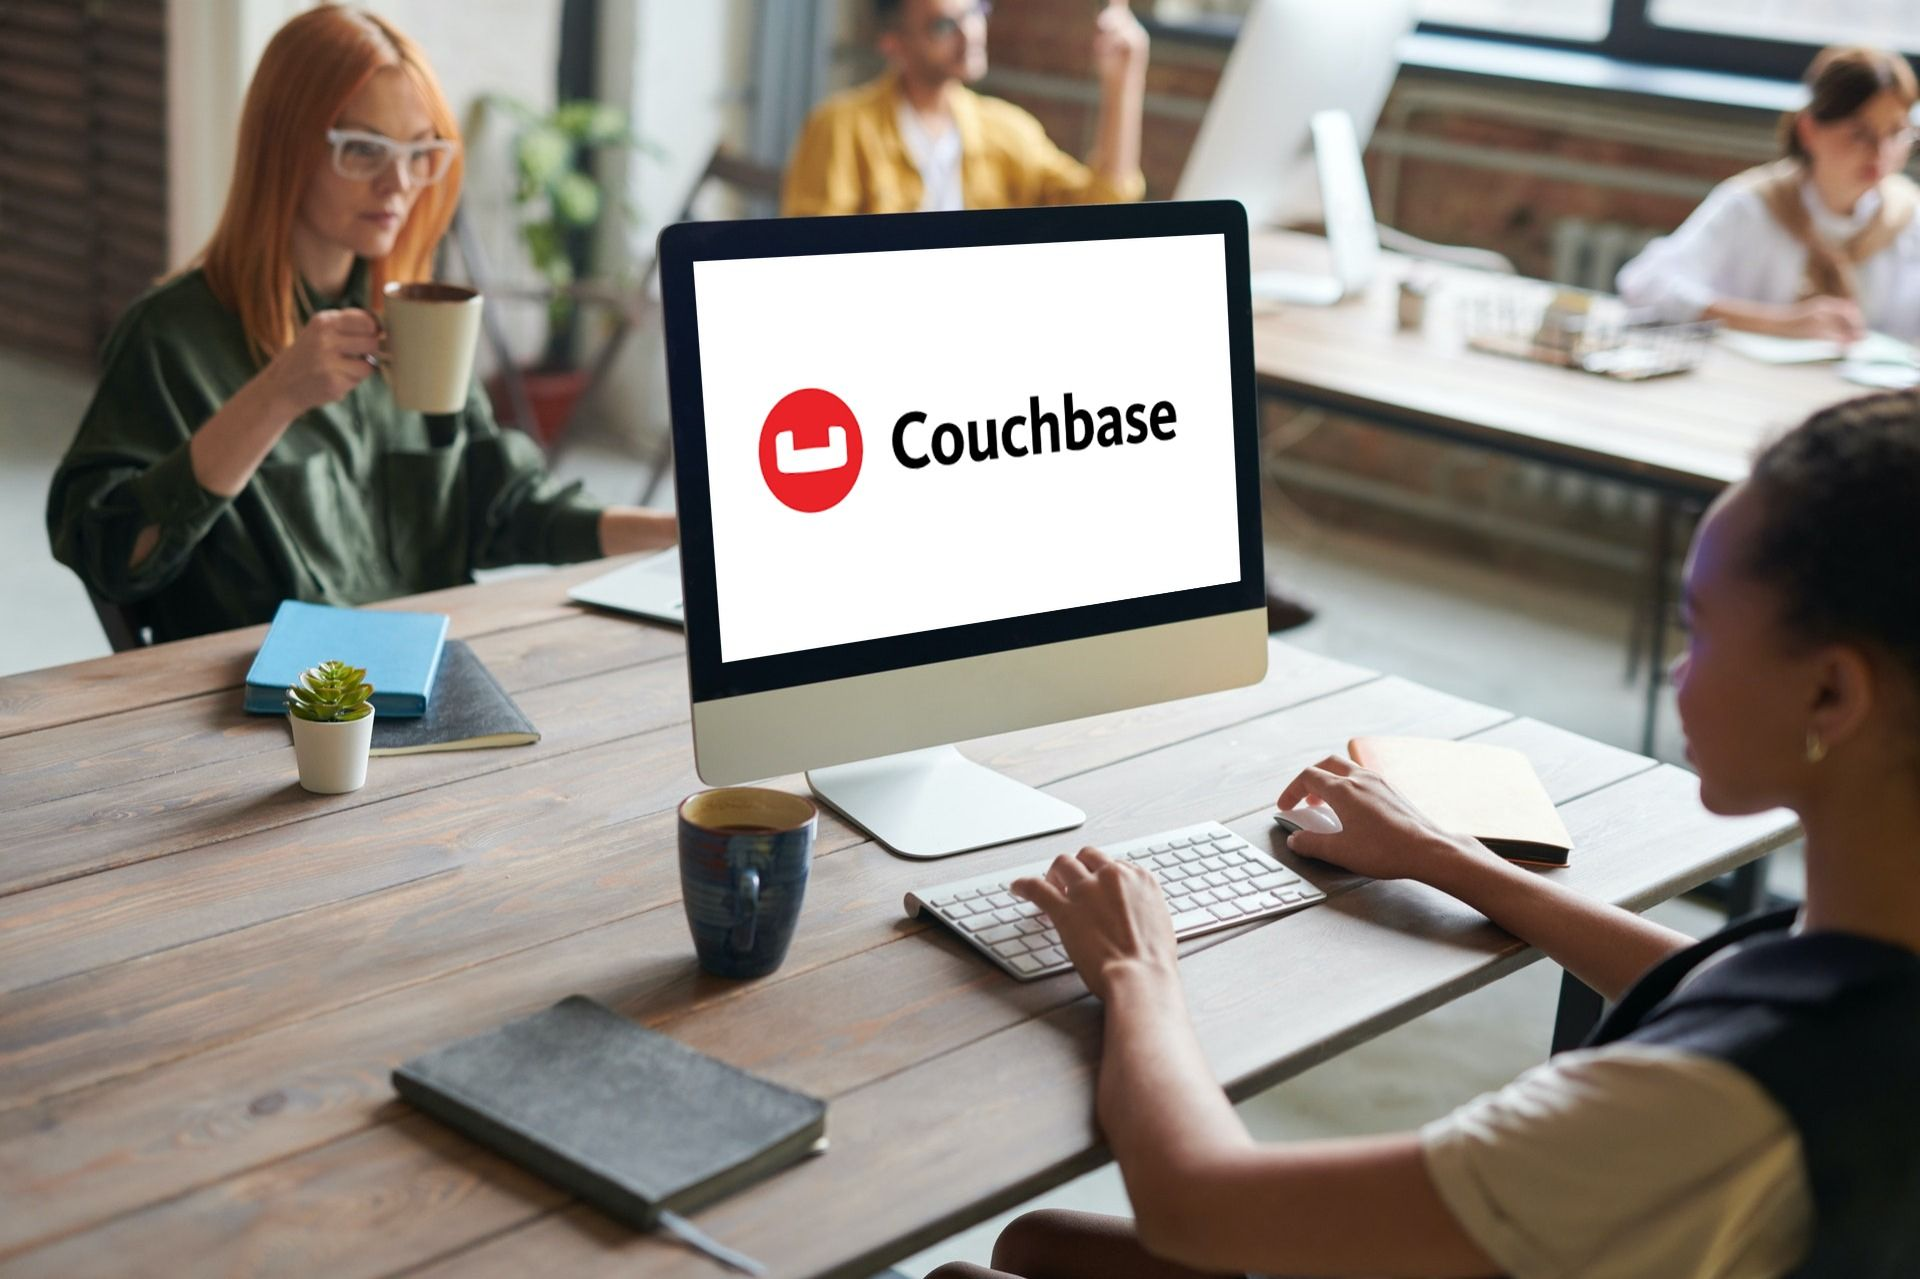 Couchbase Initial Public Offering